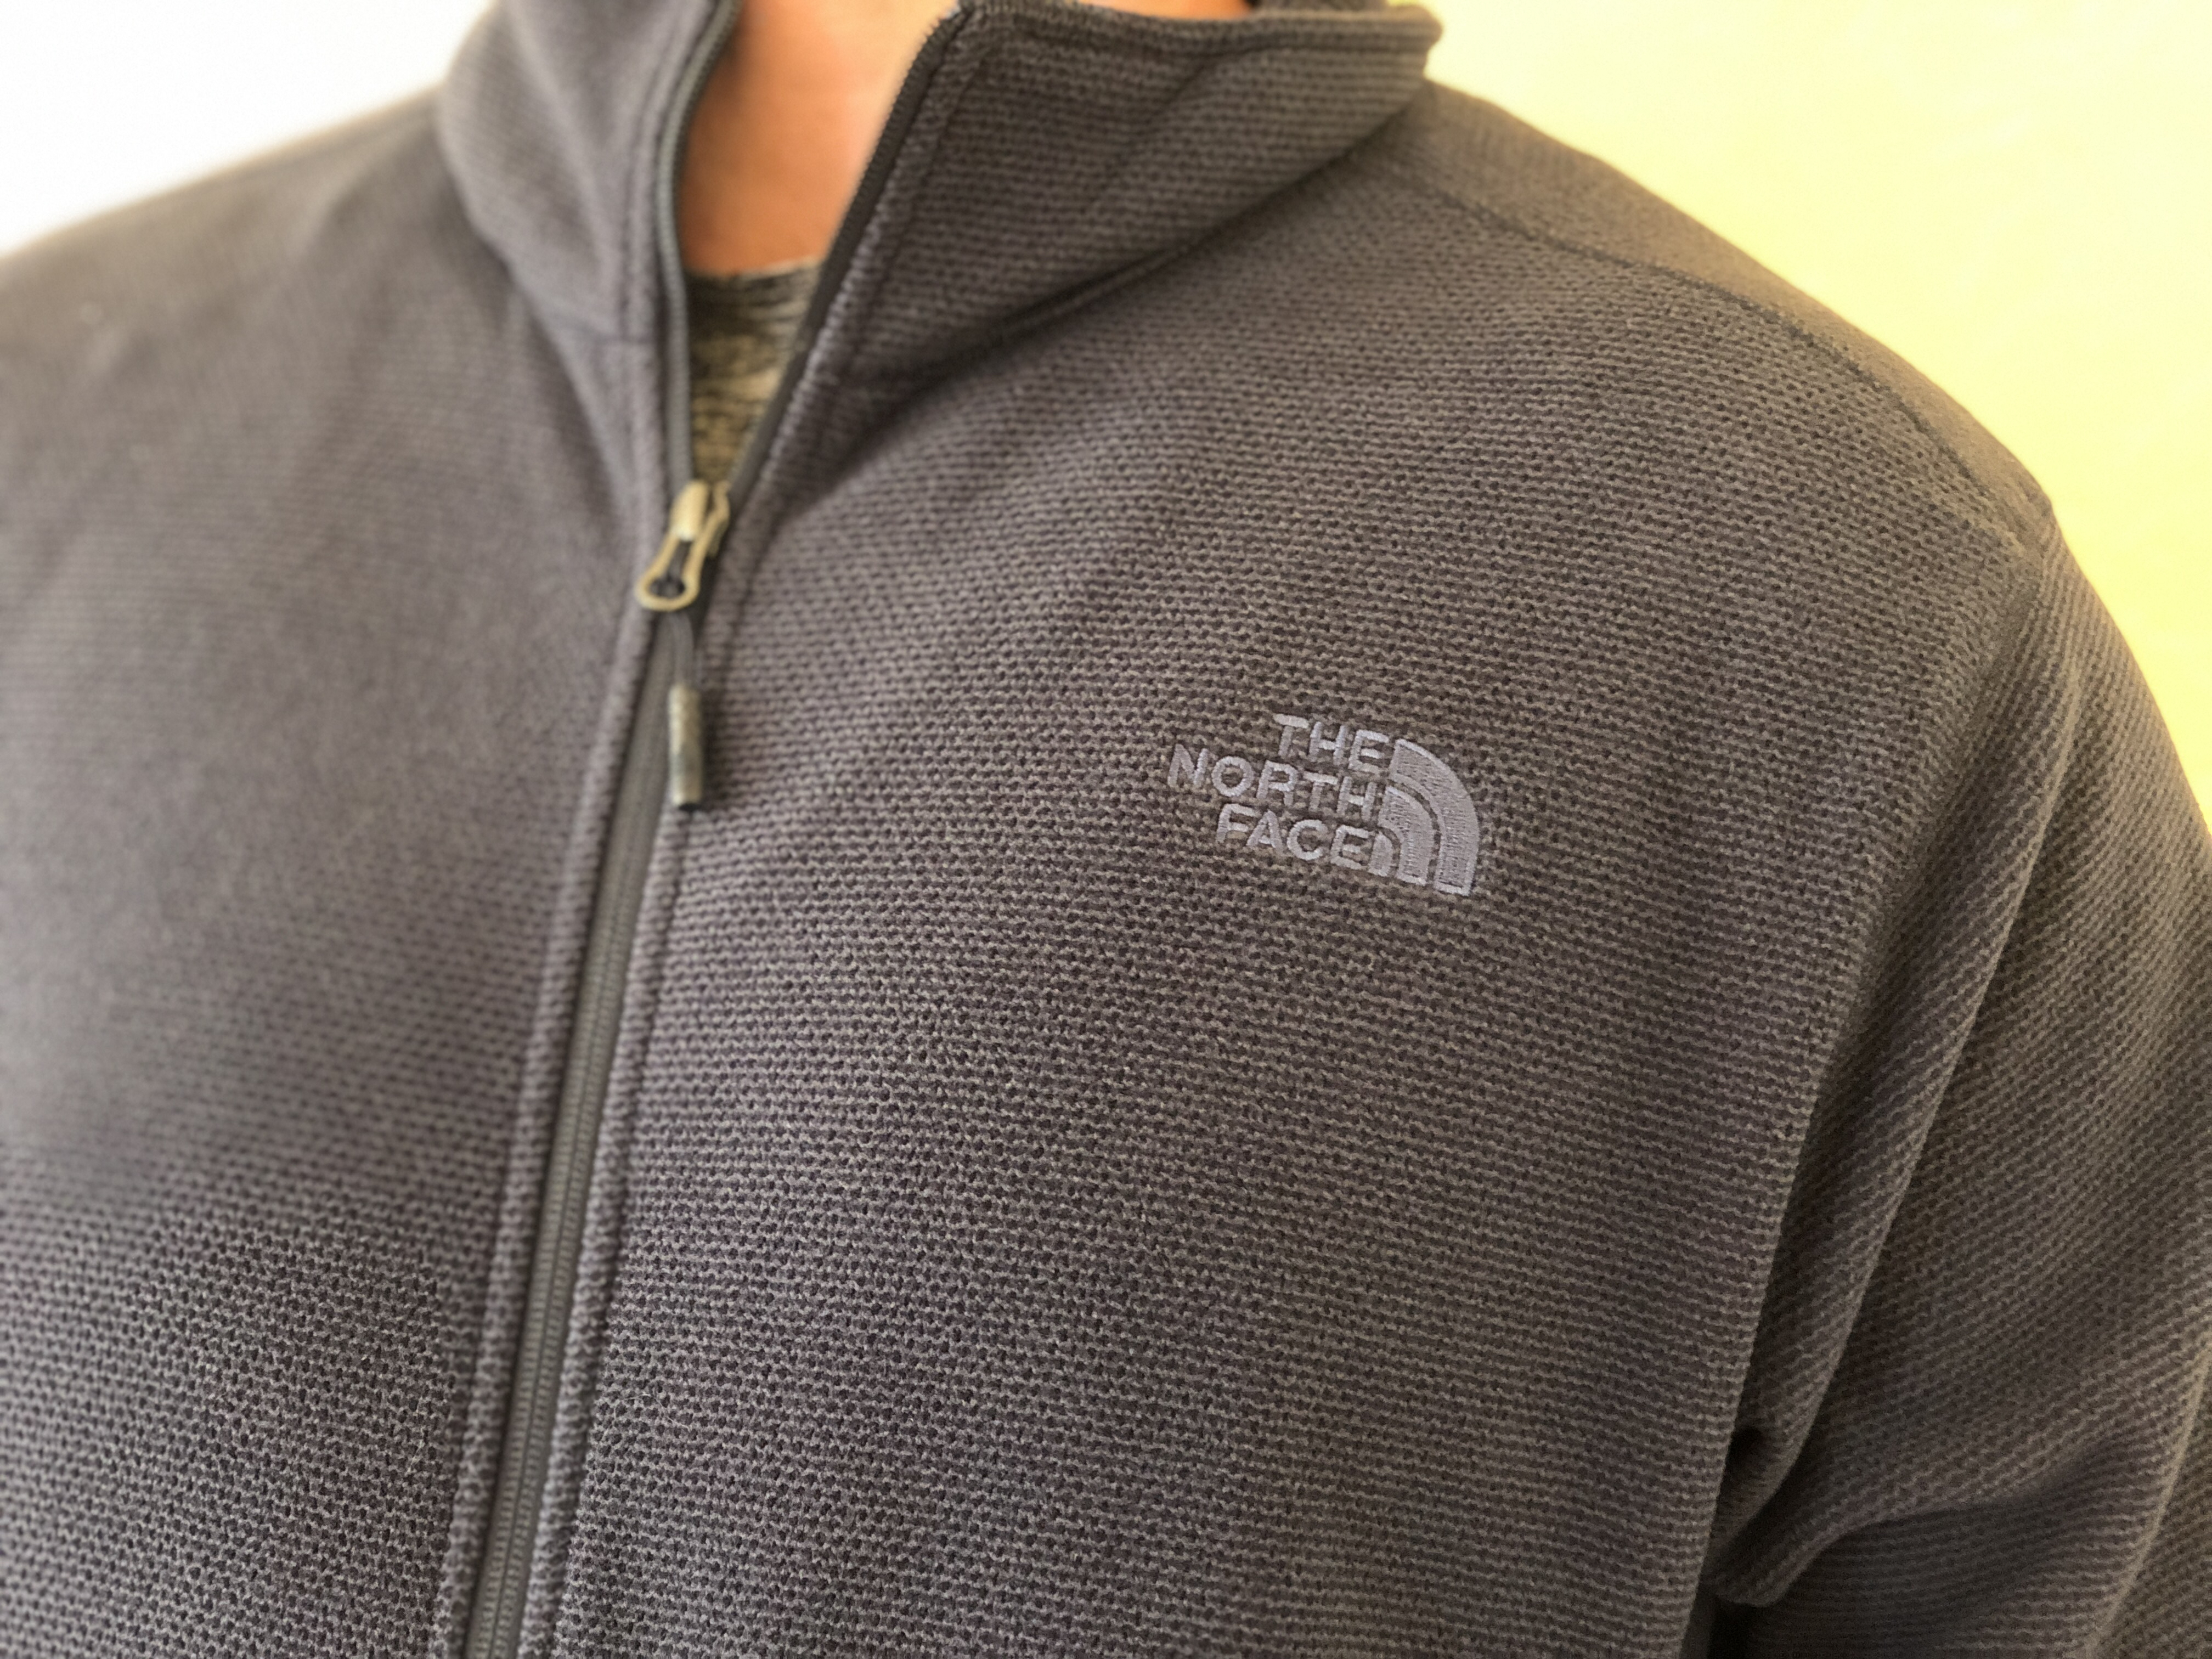 Enter to win a pair of Birkenstocks on Hip2Save (you could also win this men's Northface jacket)